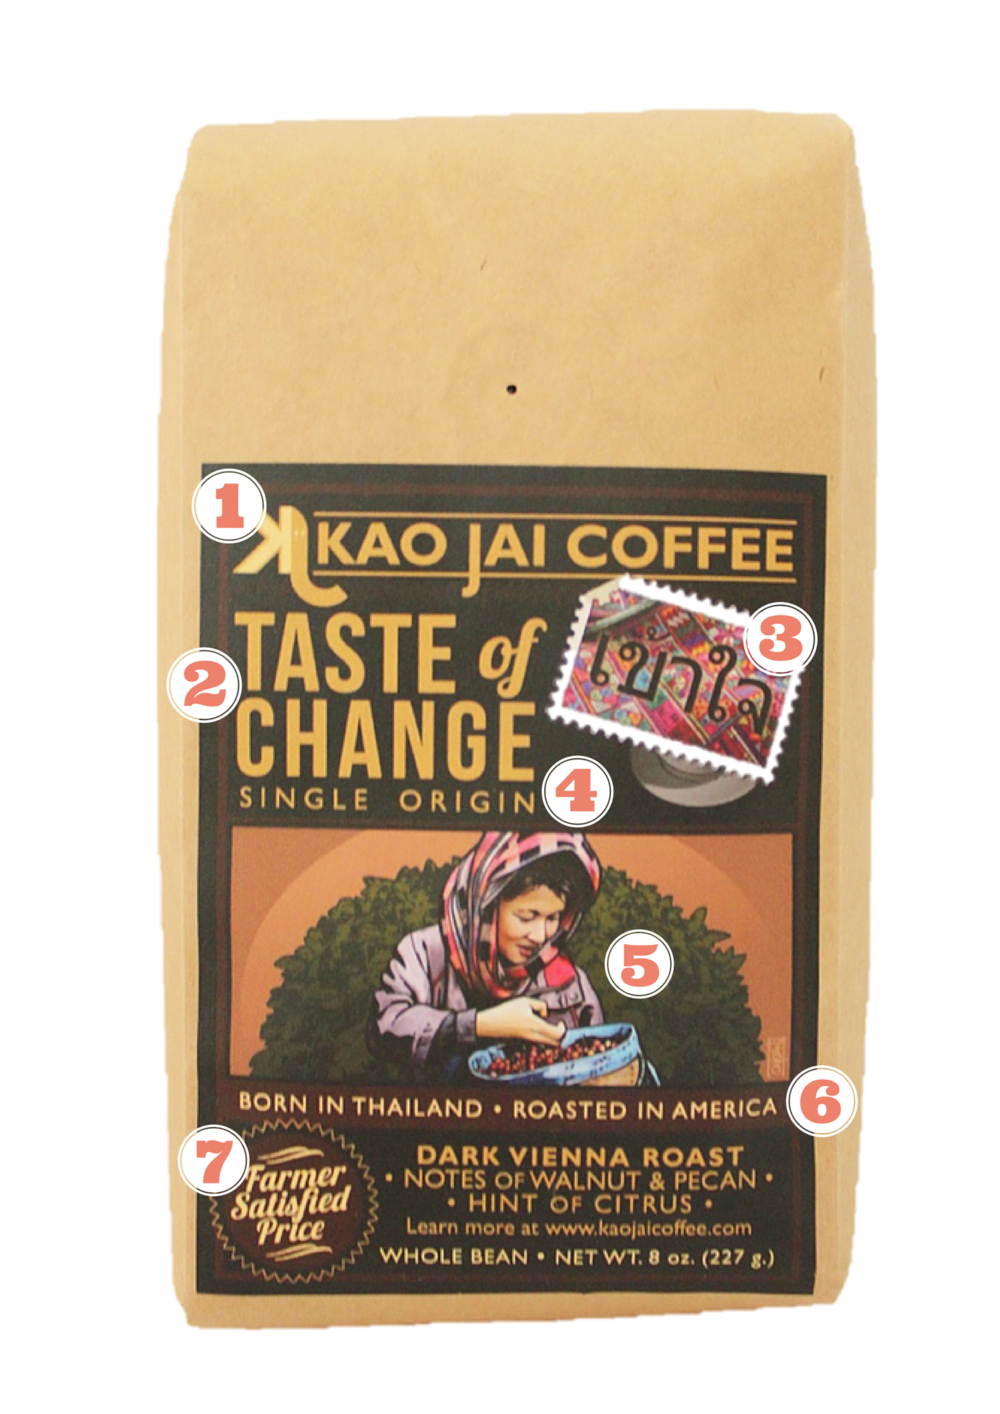 Kao Jai Thai Coffee